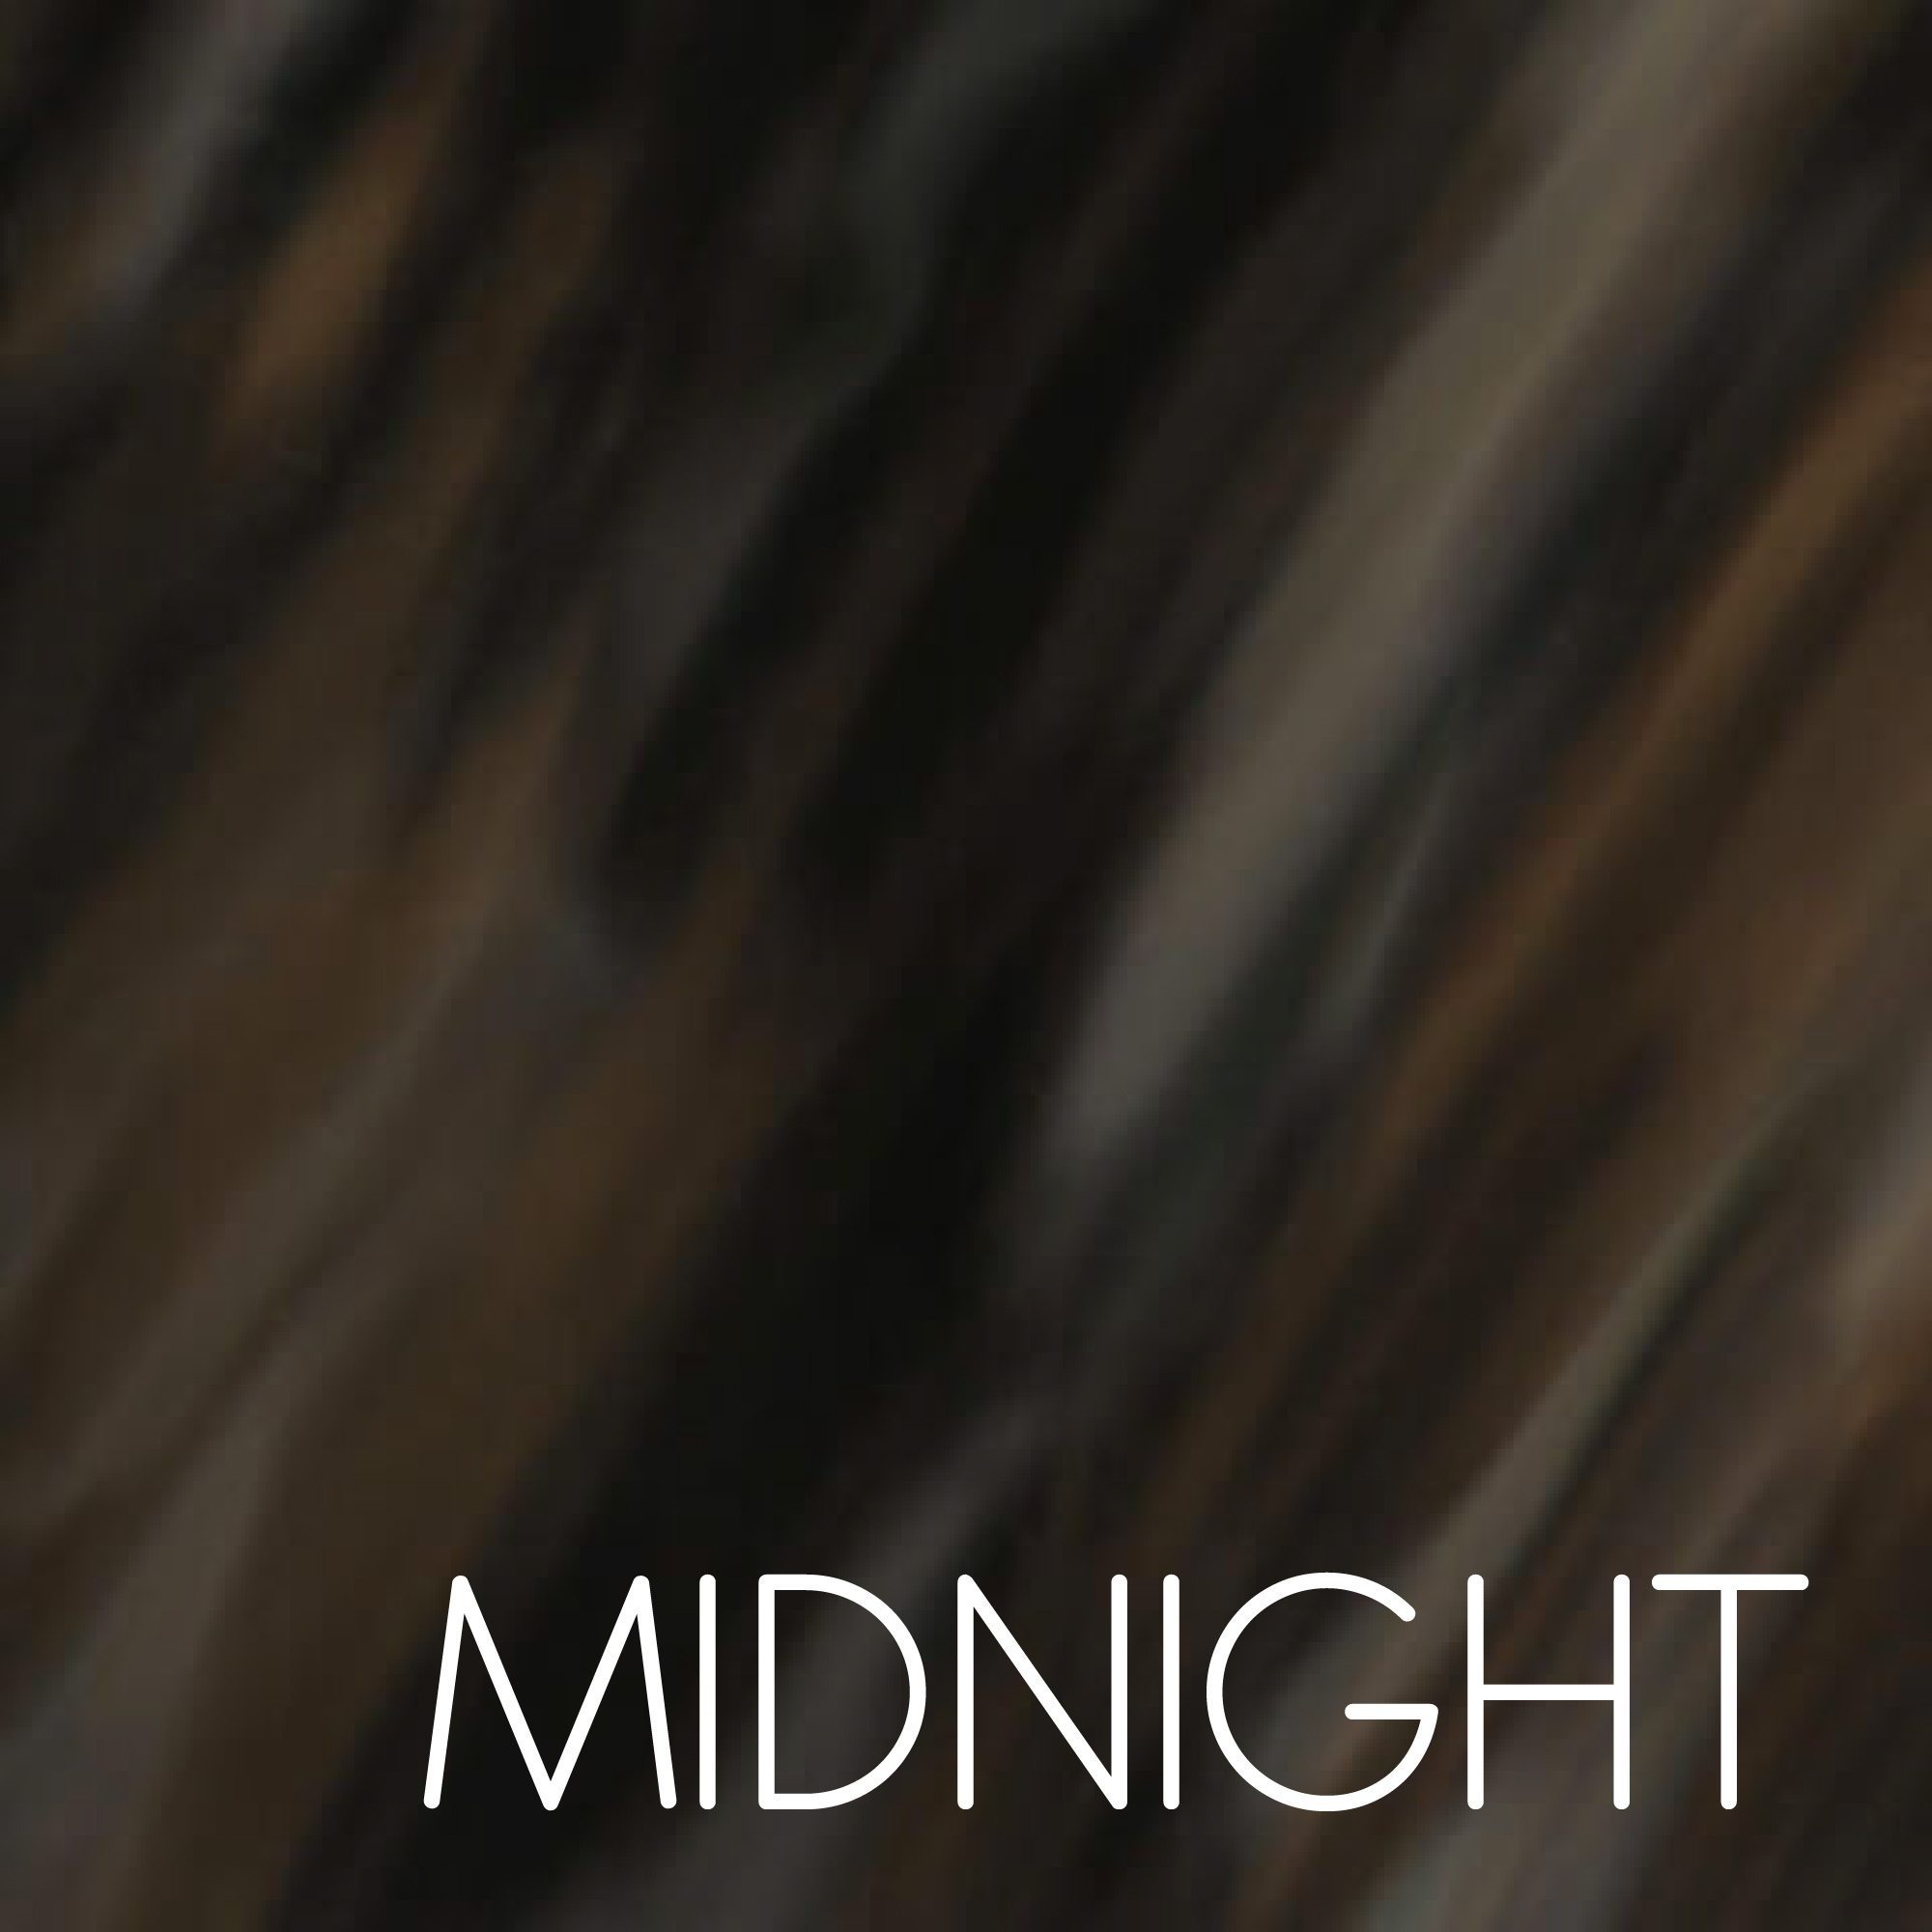 MIDNIGHT SHELL-01.jpg